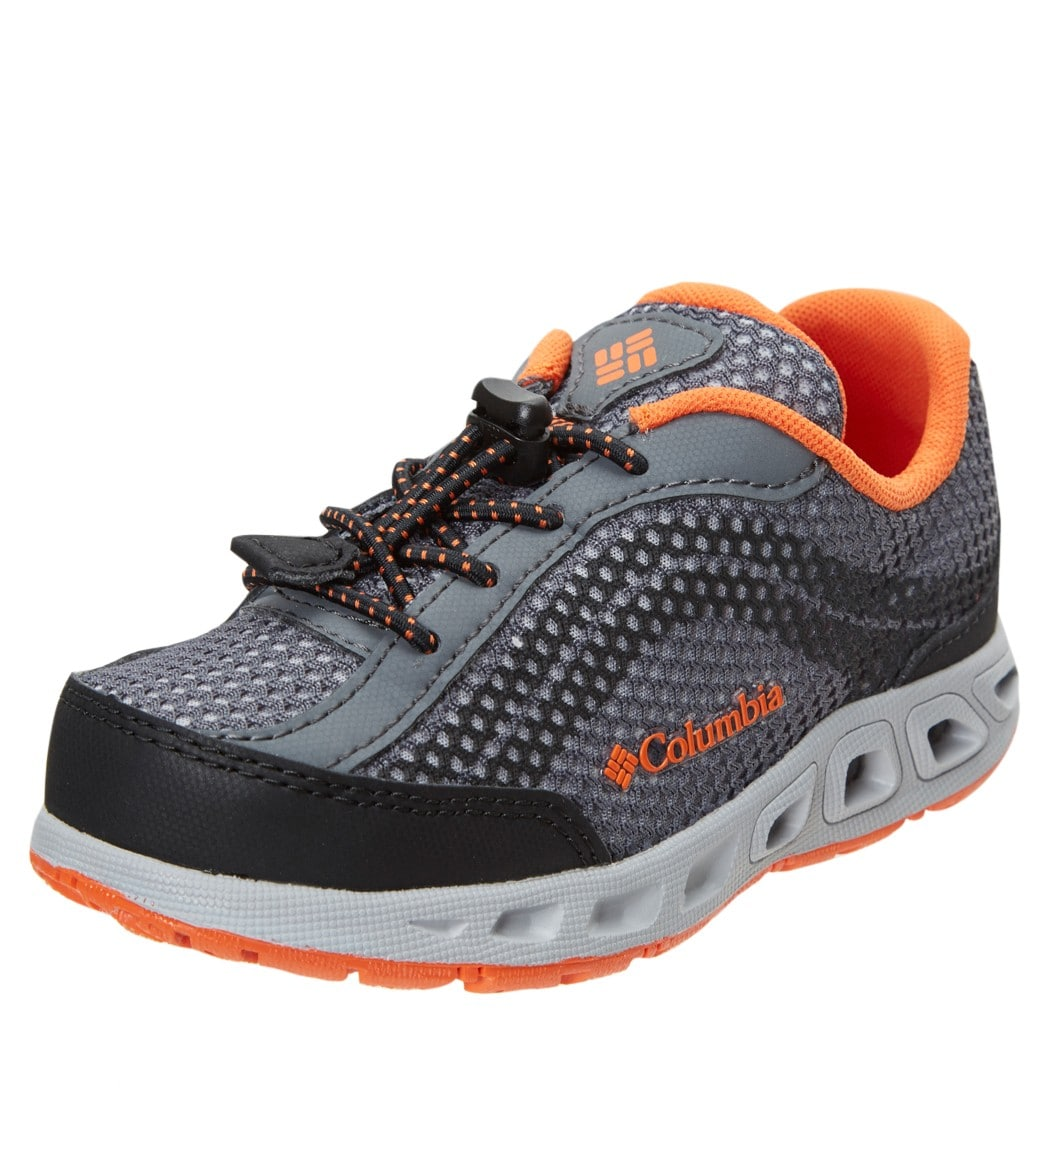 568e696cb83 Columbia Kid s Drainmaker IV Water Shoe at SwimOutlet.com - Free Shipping